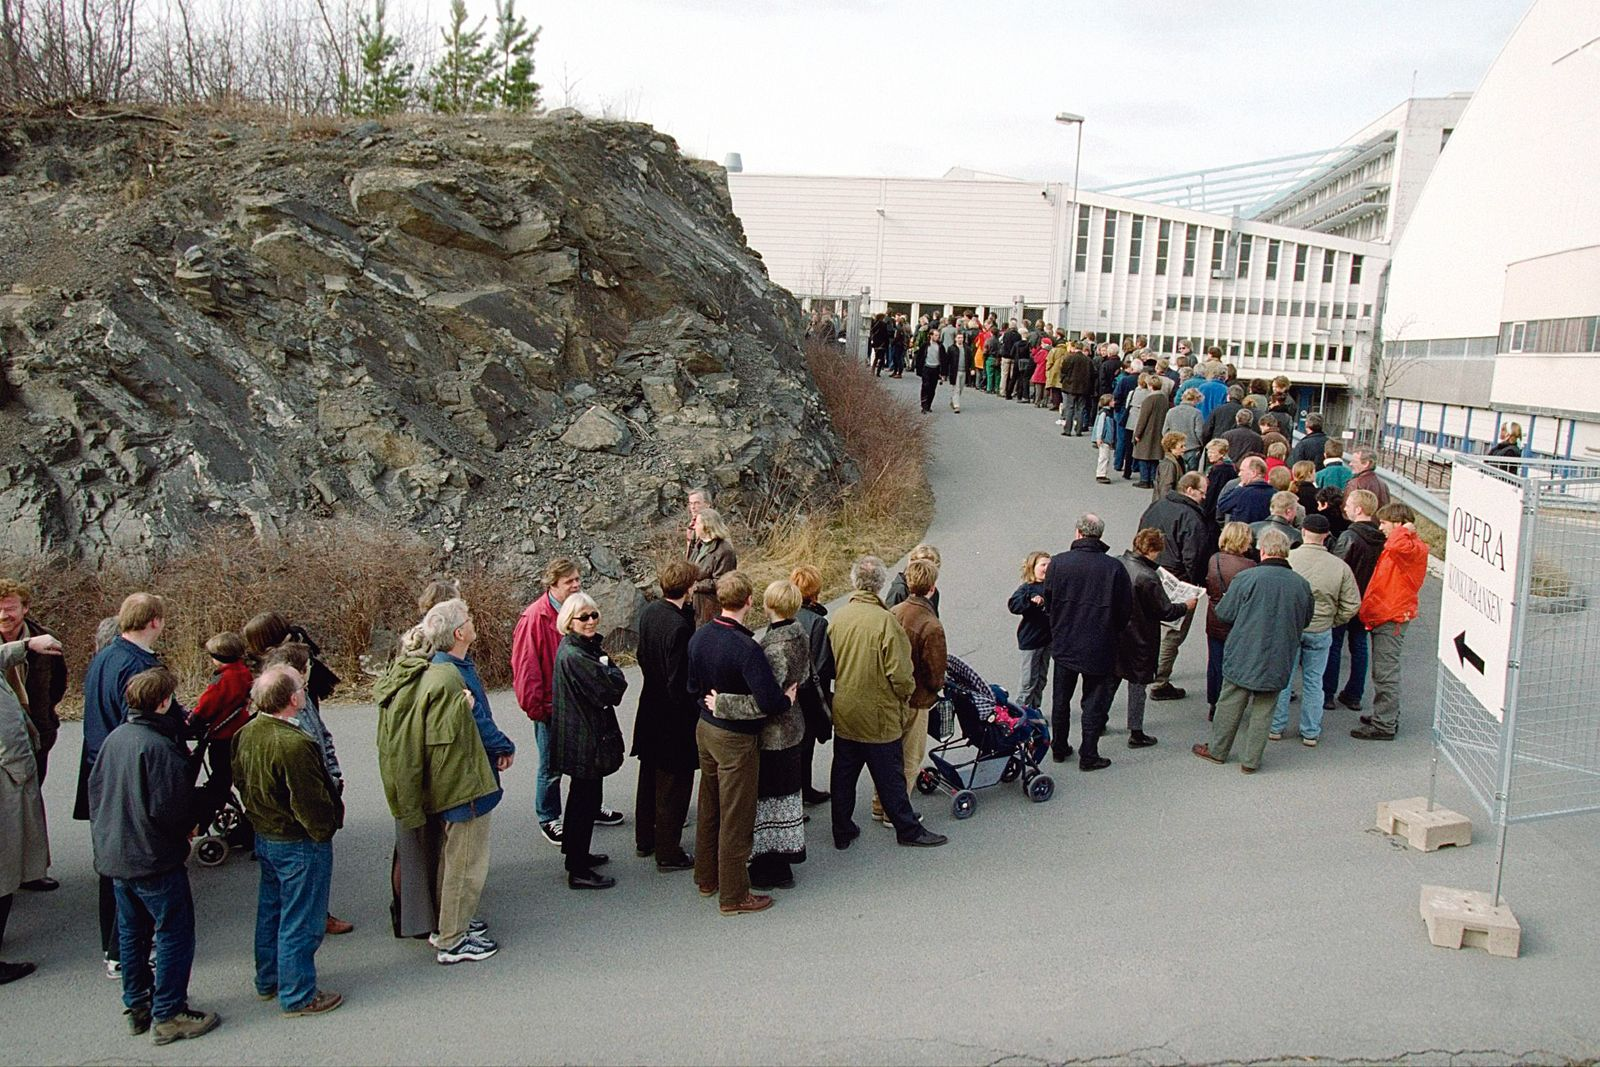 Many people wanted to see the competition entries. From the queue  for the exhibition at Fornebu, 2000. Photo: Jon Hauge/Scanpix